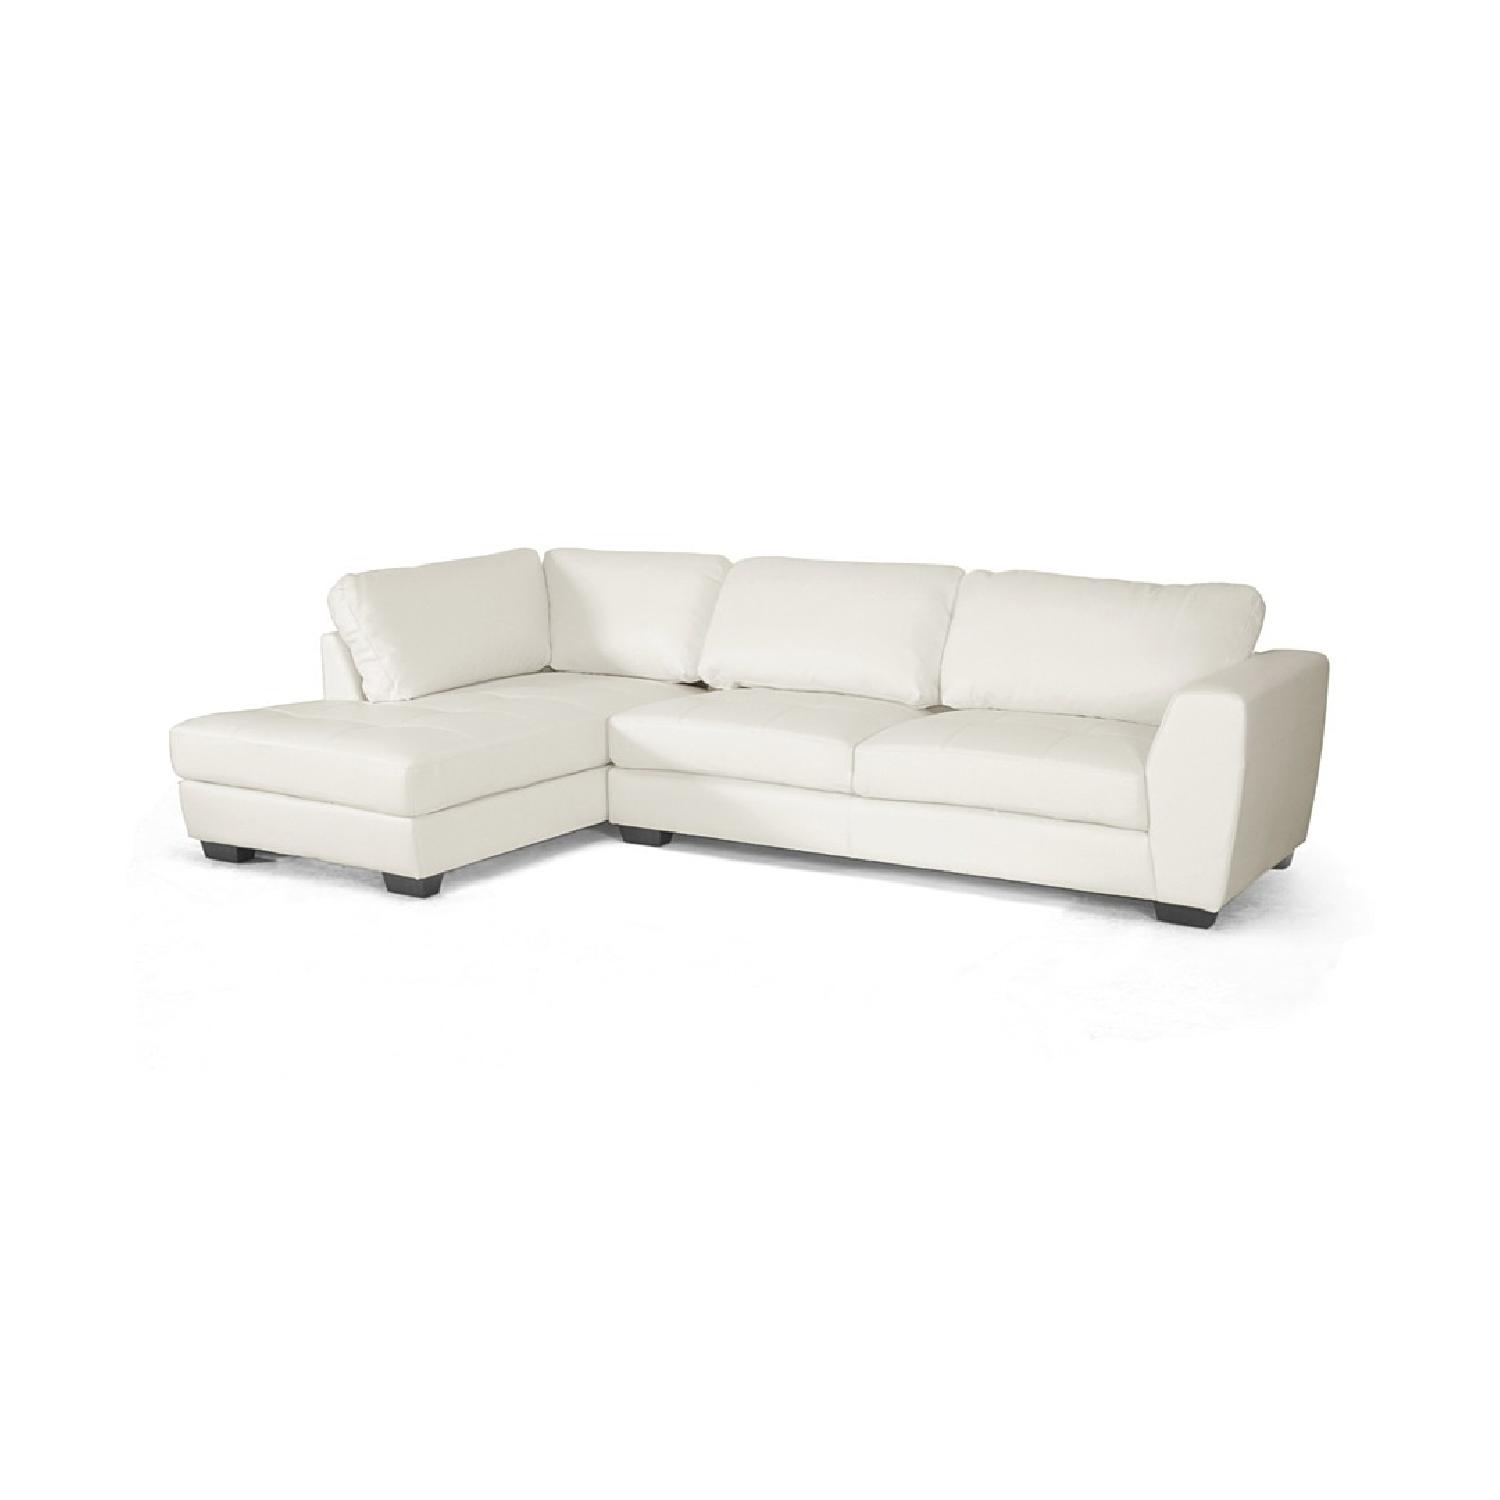 Sofa W Chaise – Home Decor 88 Within Mcculla Sofa Sectionals With Reversible Chaise (Image 24 of 25)